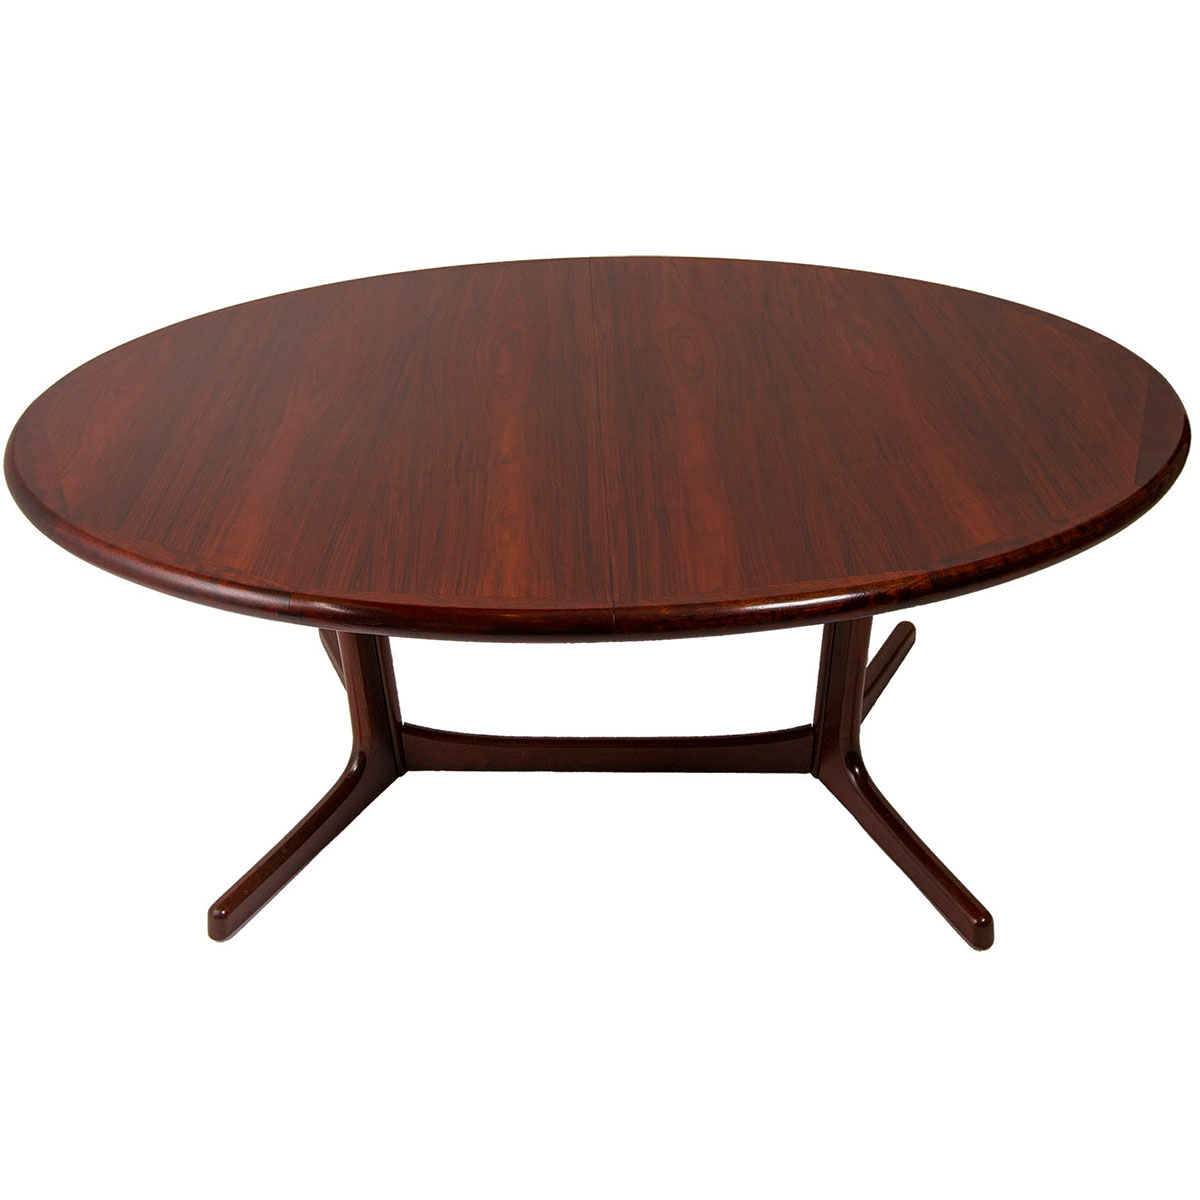 Majestic Danish Modern Rosewood Large Oval Expanding Dining Table